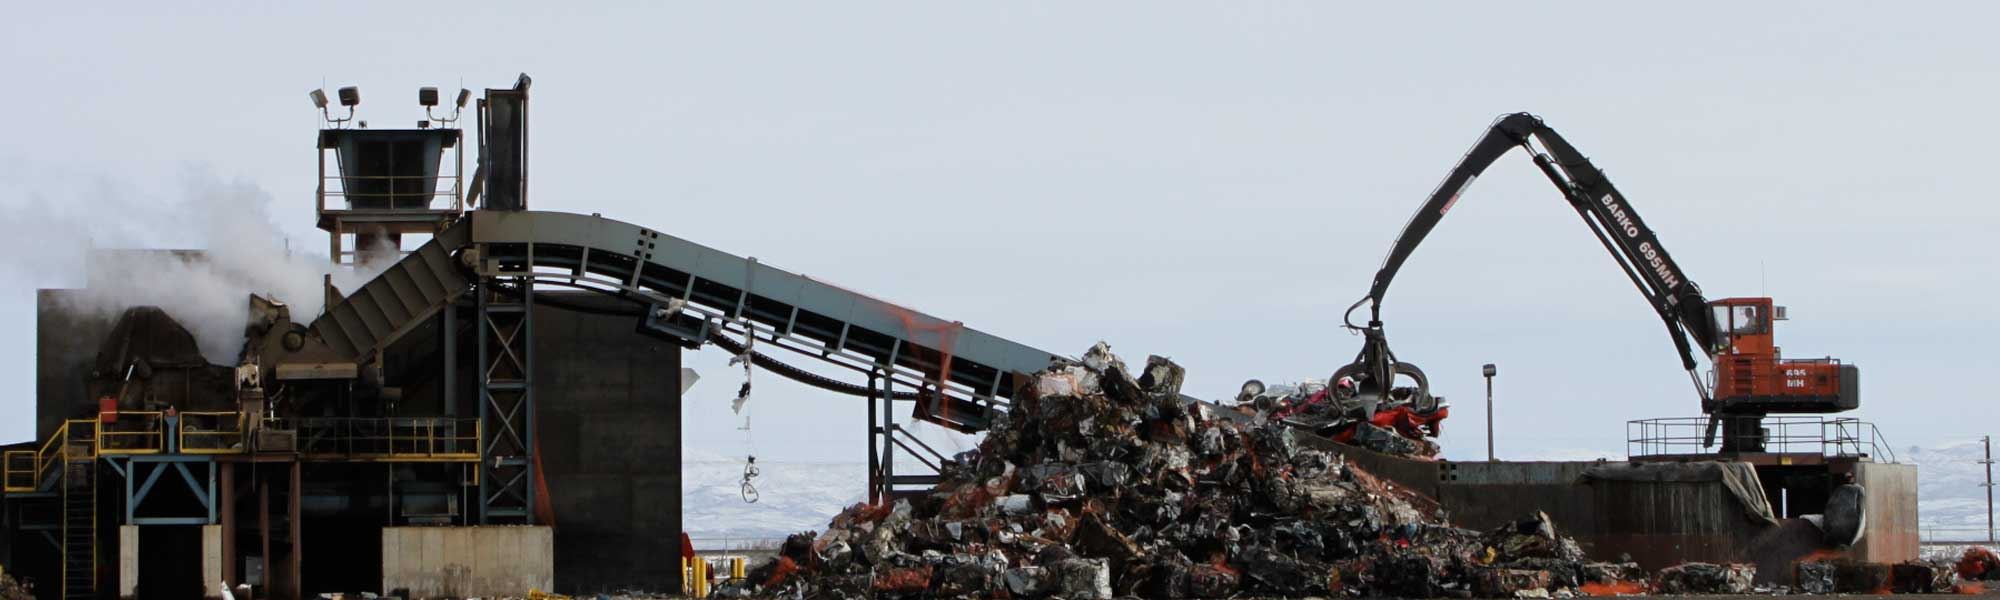 more scrap metal being moved at large recycling center